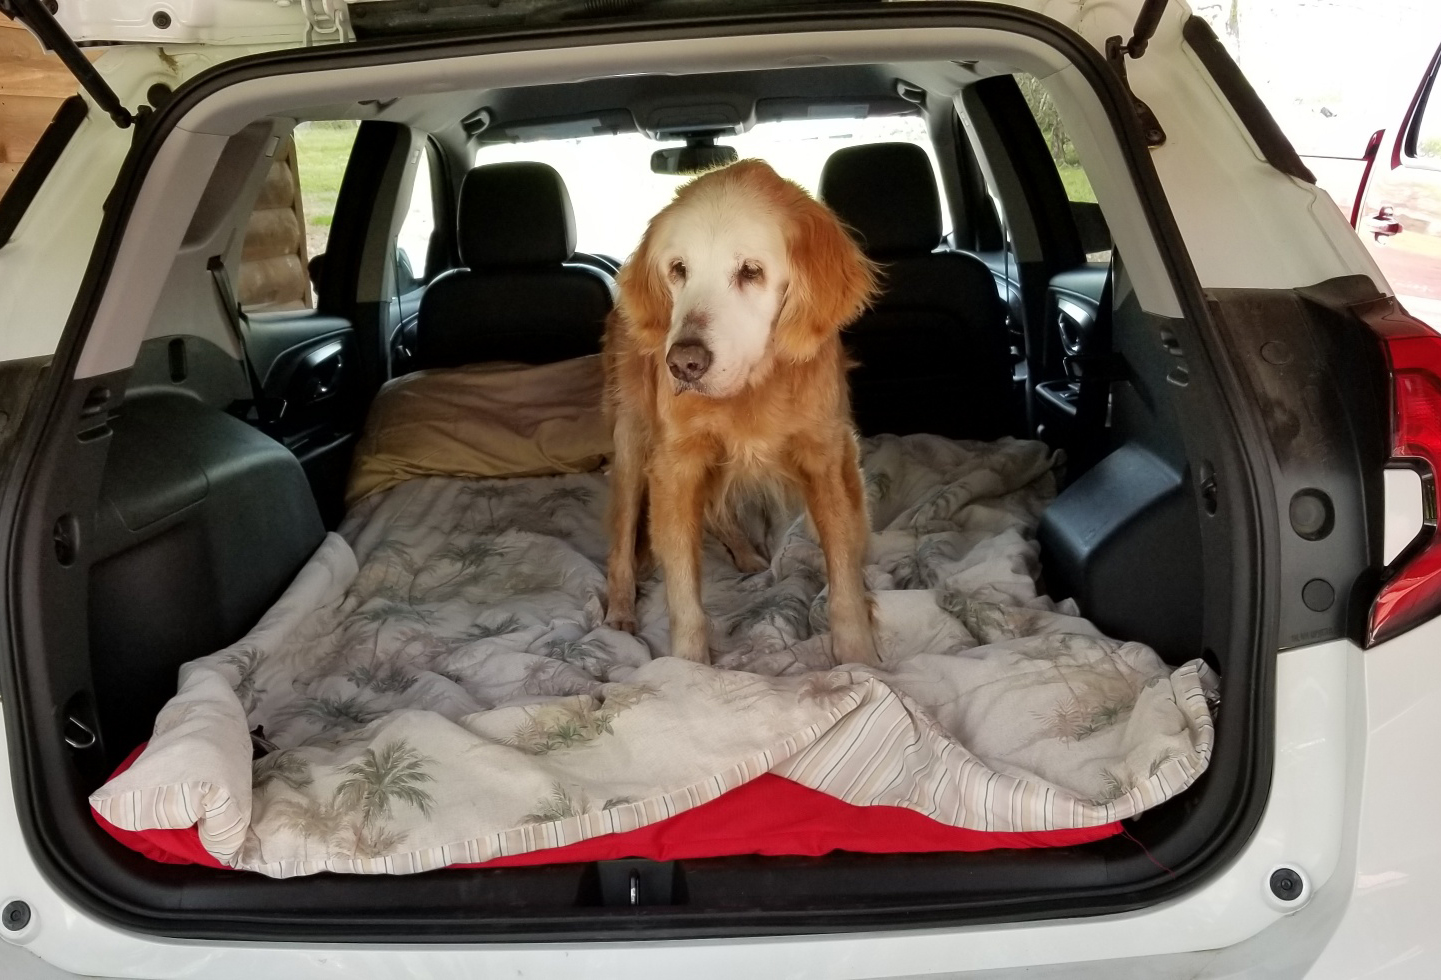 20 year old golden retriever travels